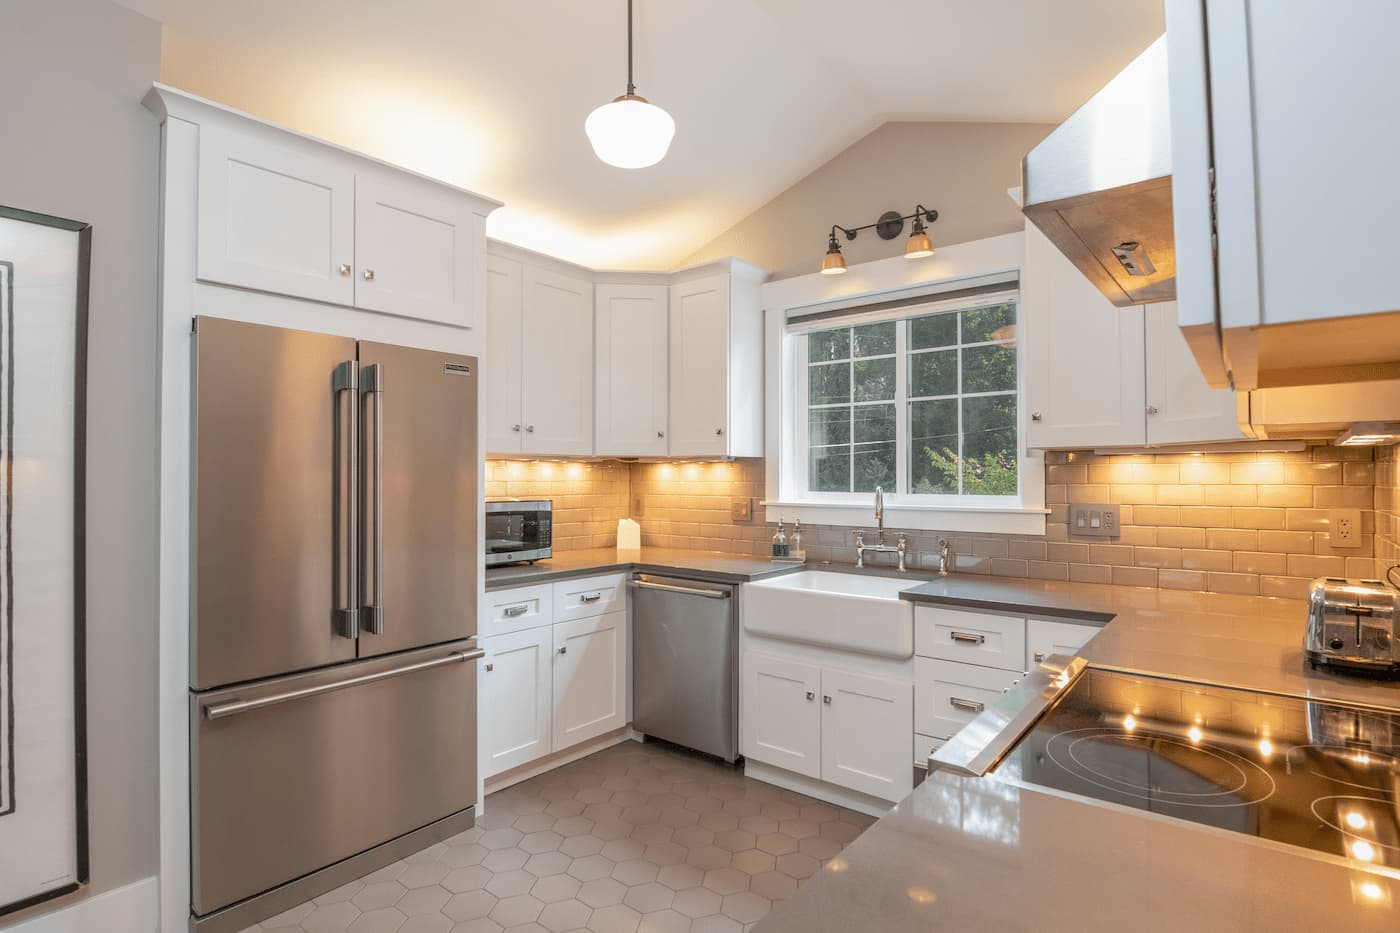 Low cost appliances at your rental property